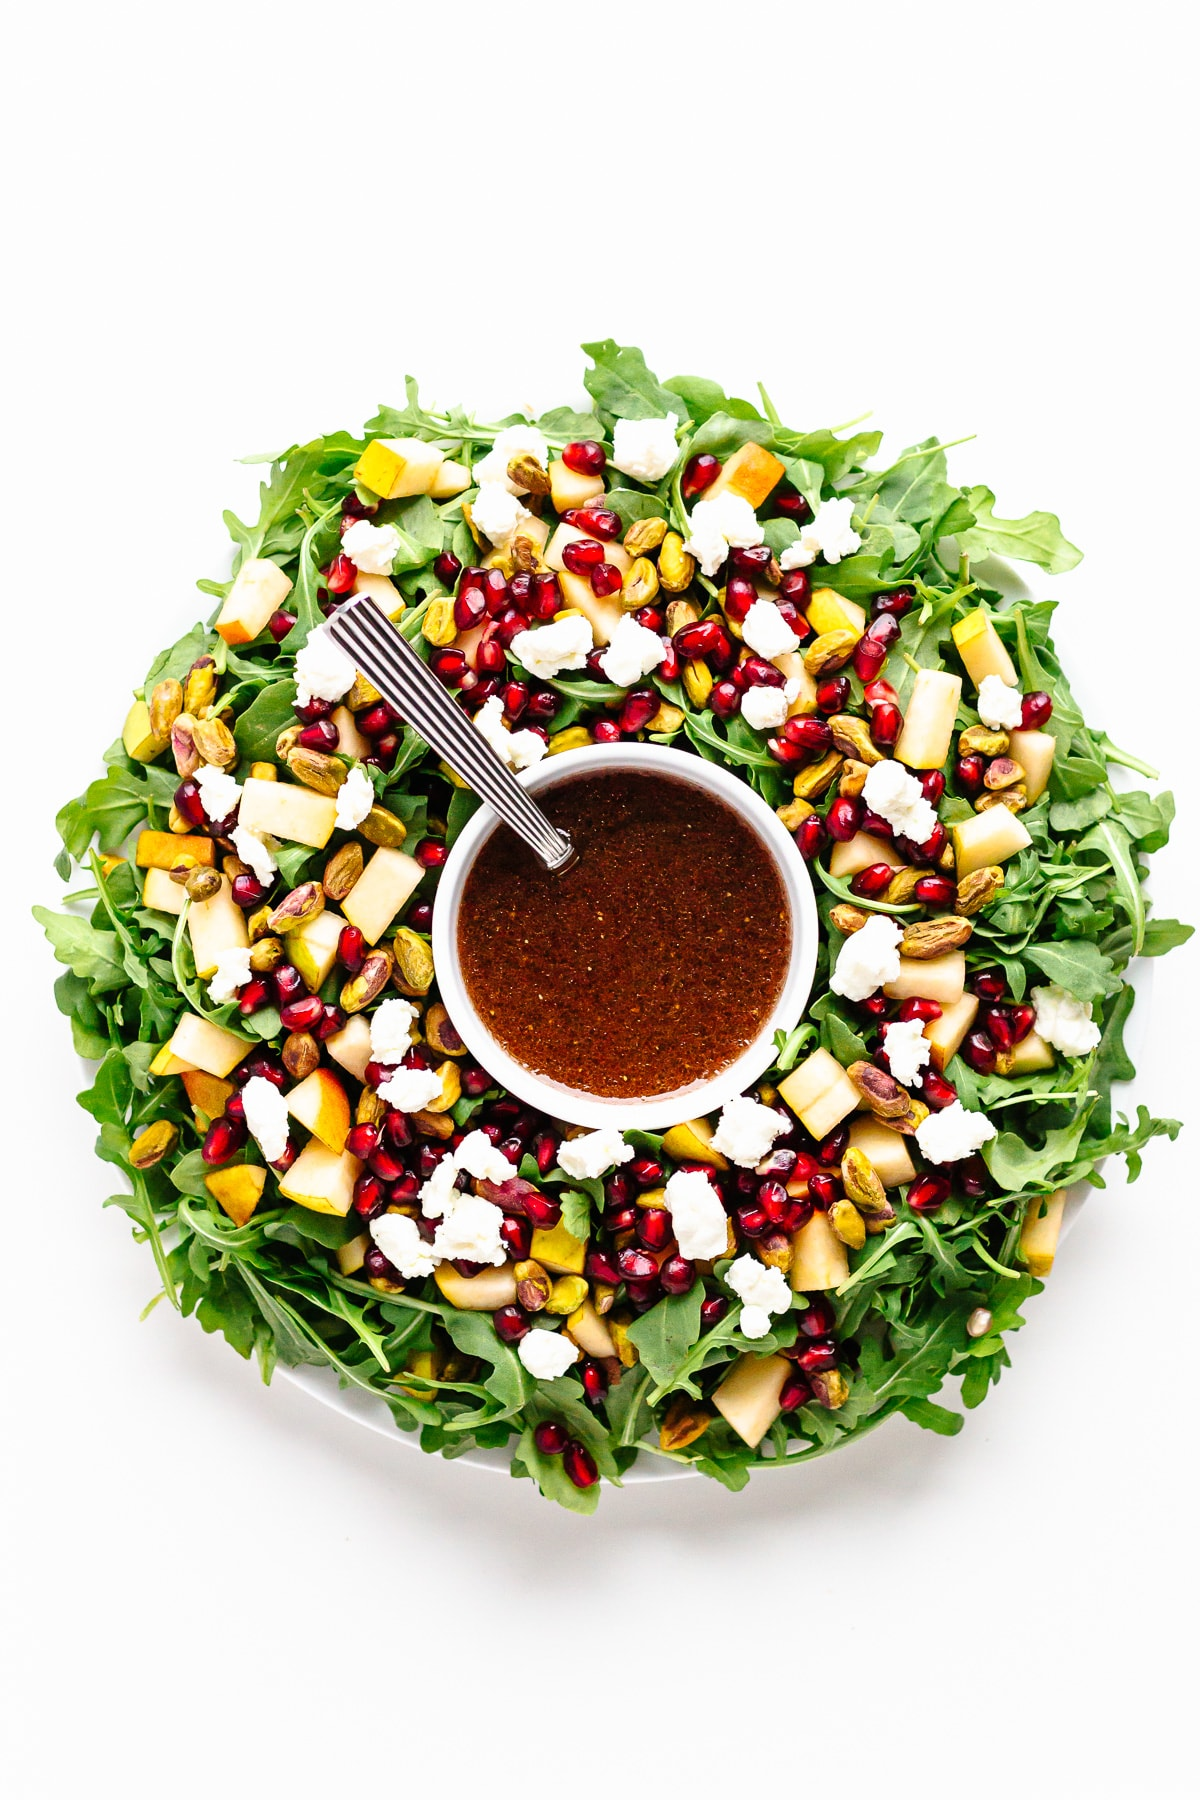 Holiday salad arranged in the shape of a Christmas wreath with a bowl of pomegranate vinaigrette in the center.